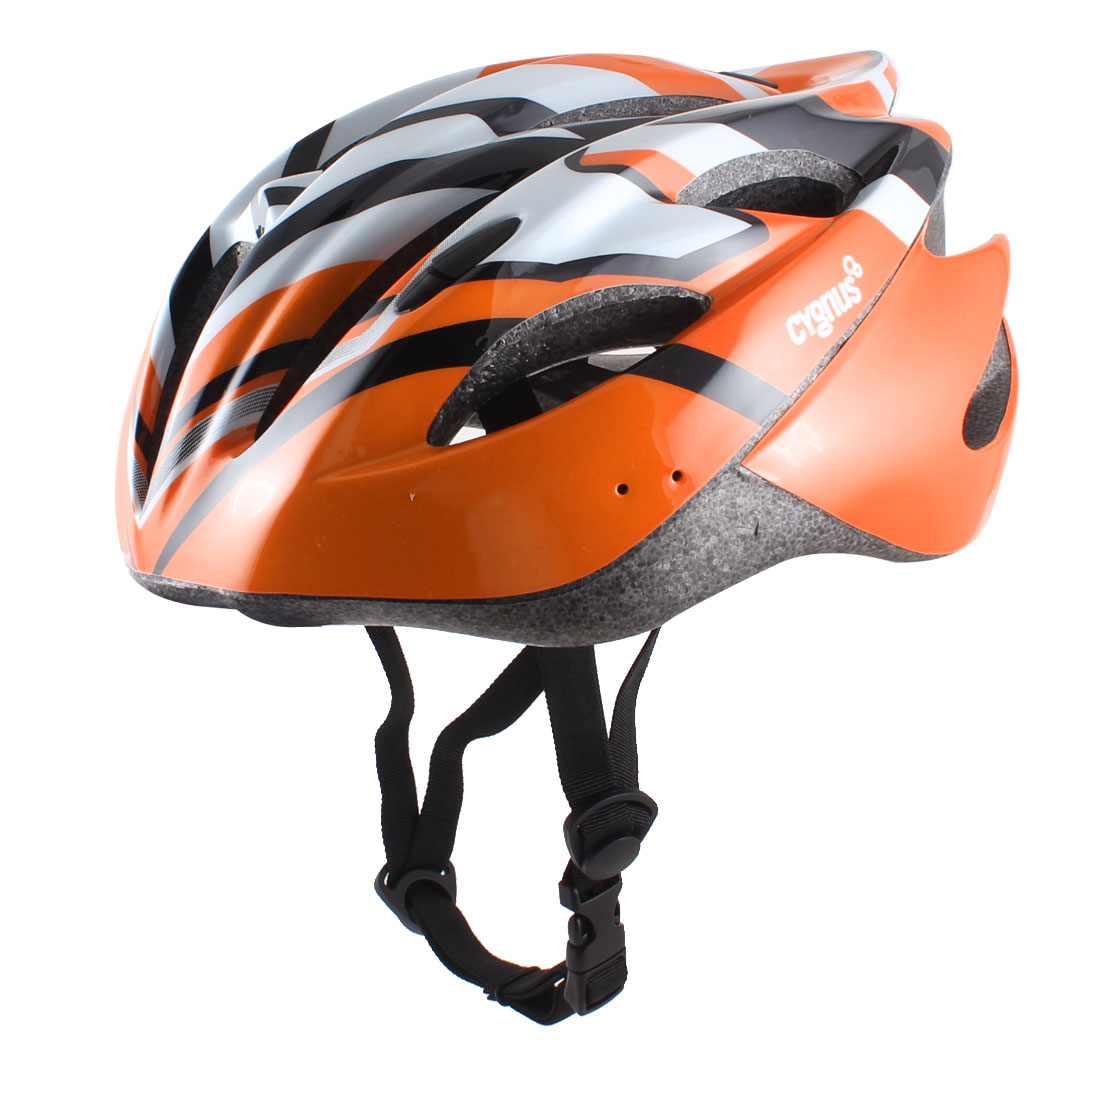 Man Women Adult Black Orange White Bicycle Bike Cycling Striped Foam Helmet